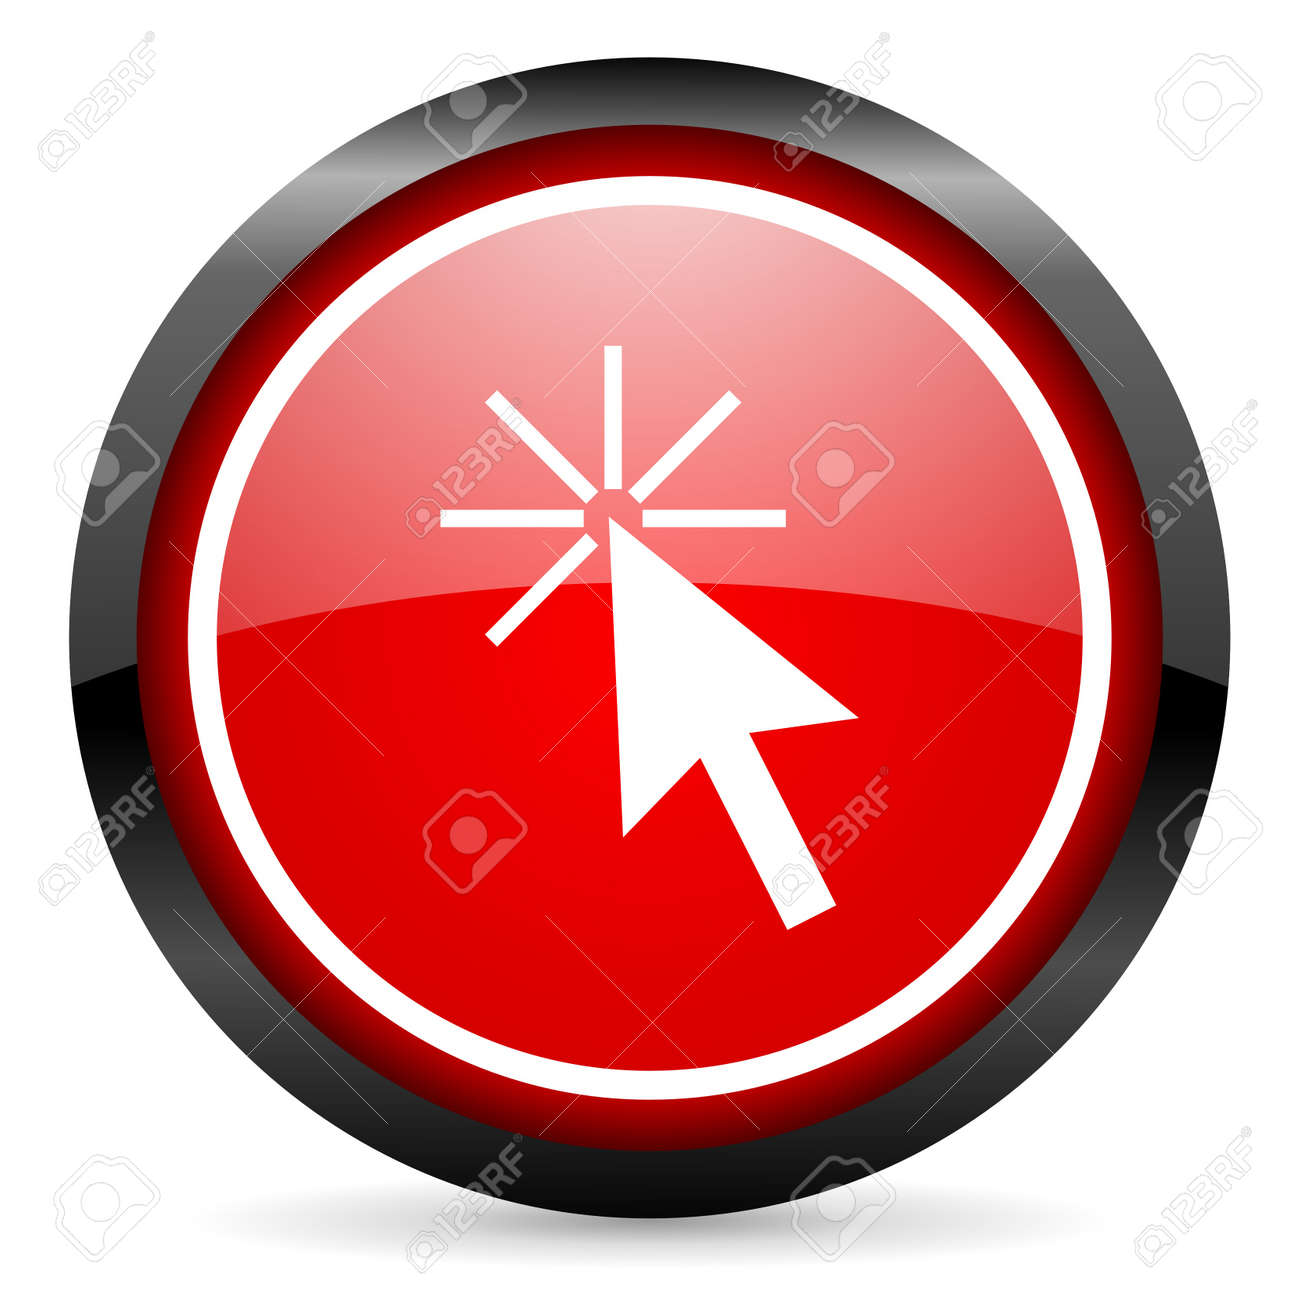 click here round red glossy icon on white background Stock Photo - 16506076